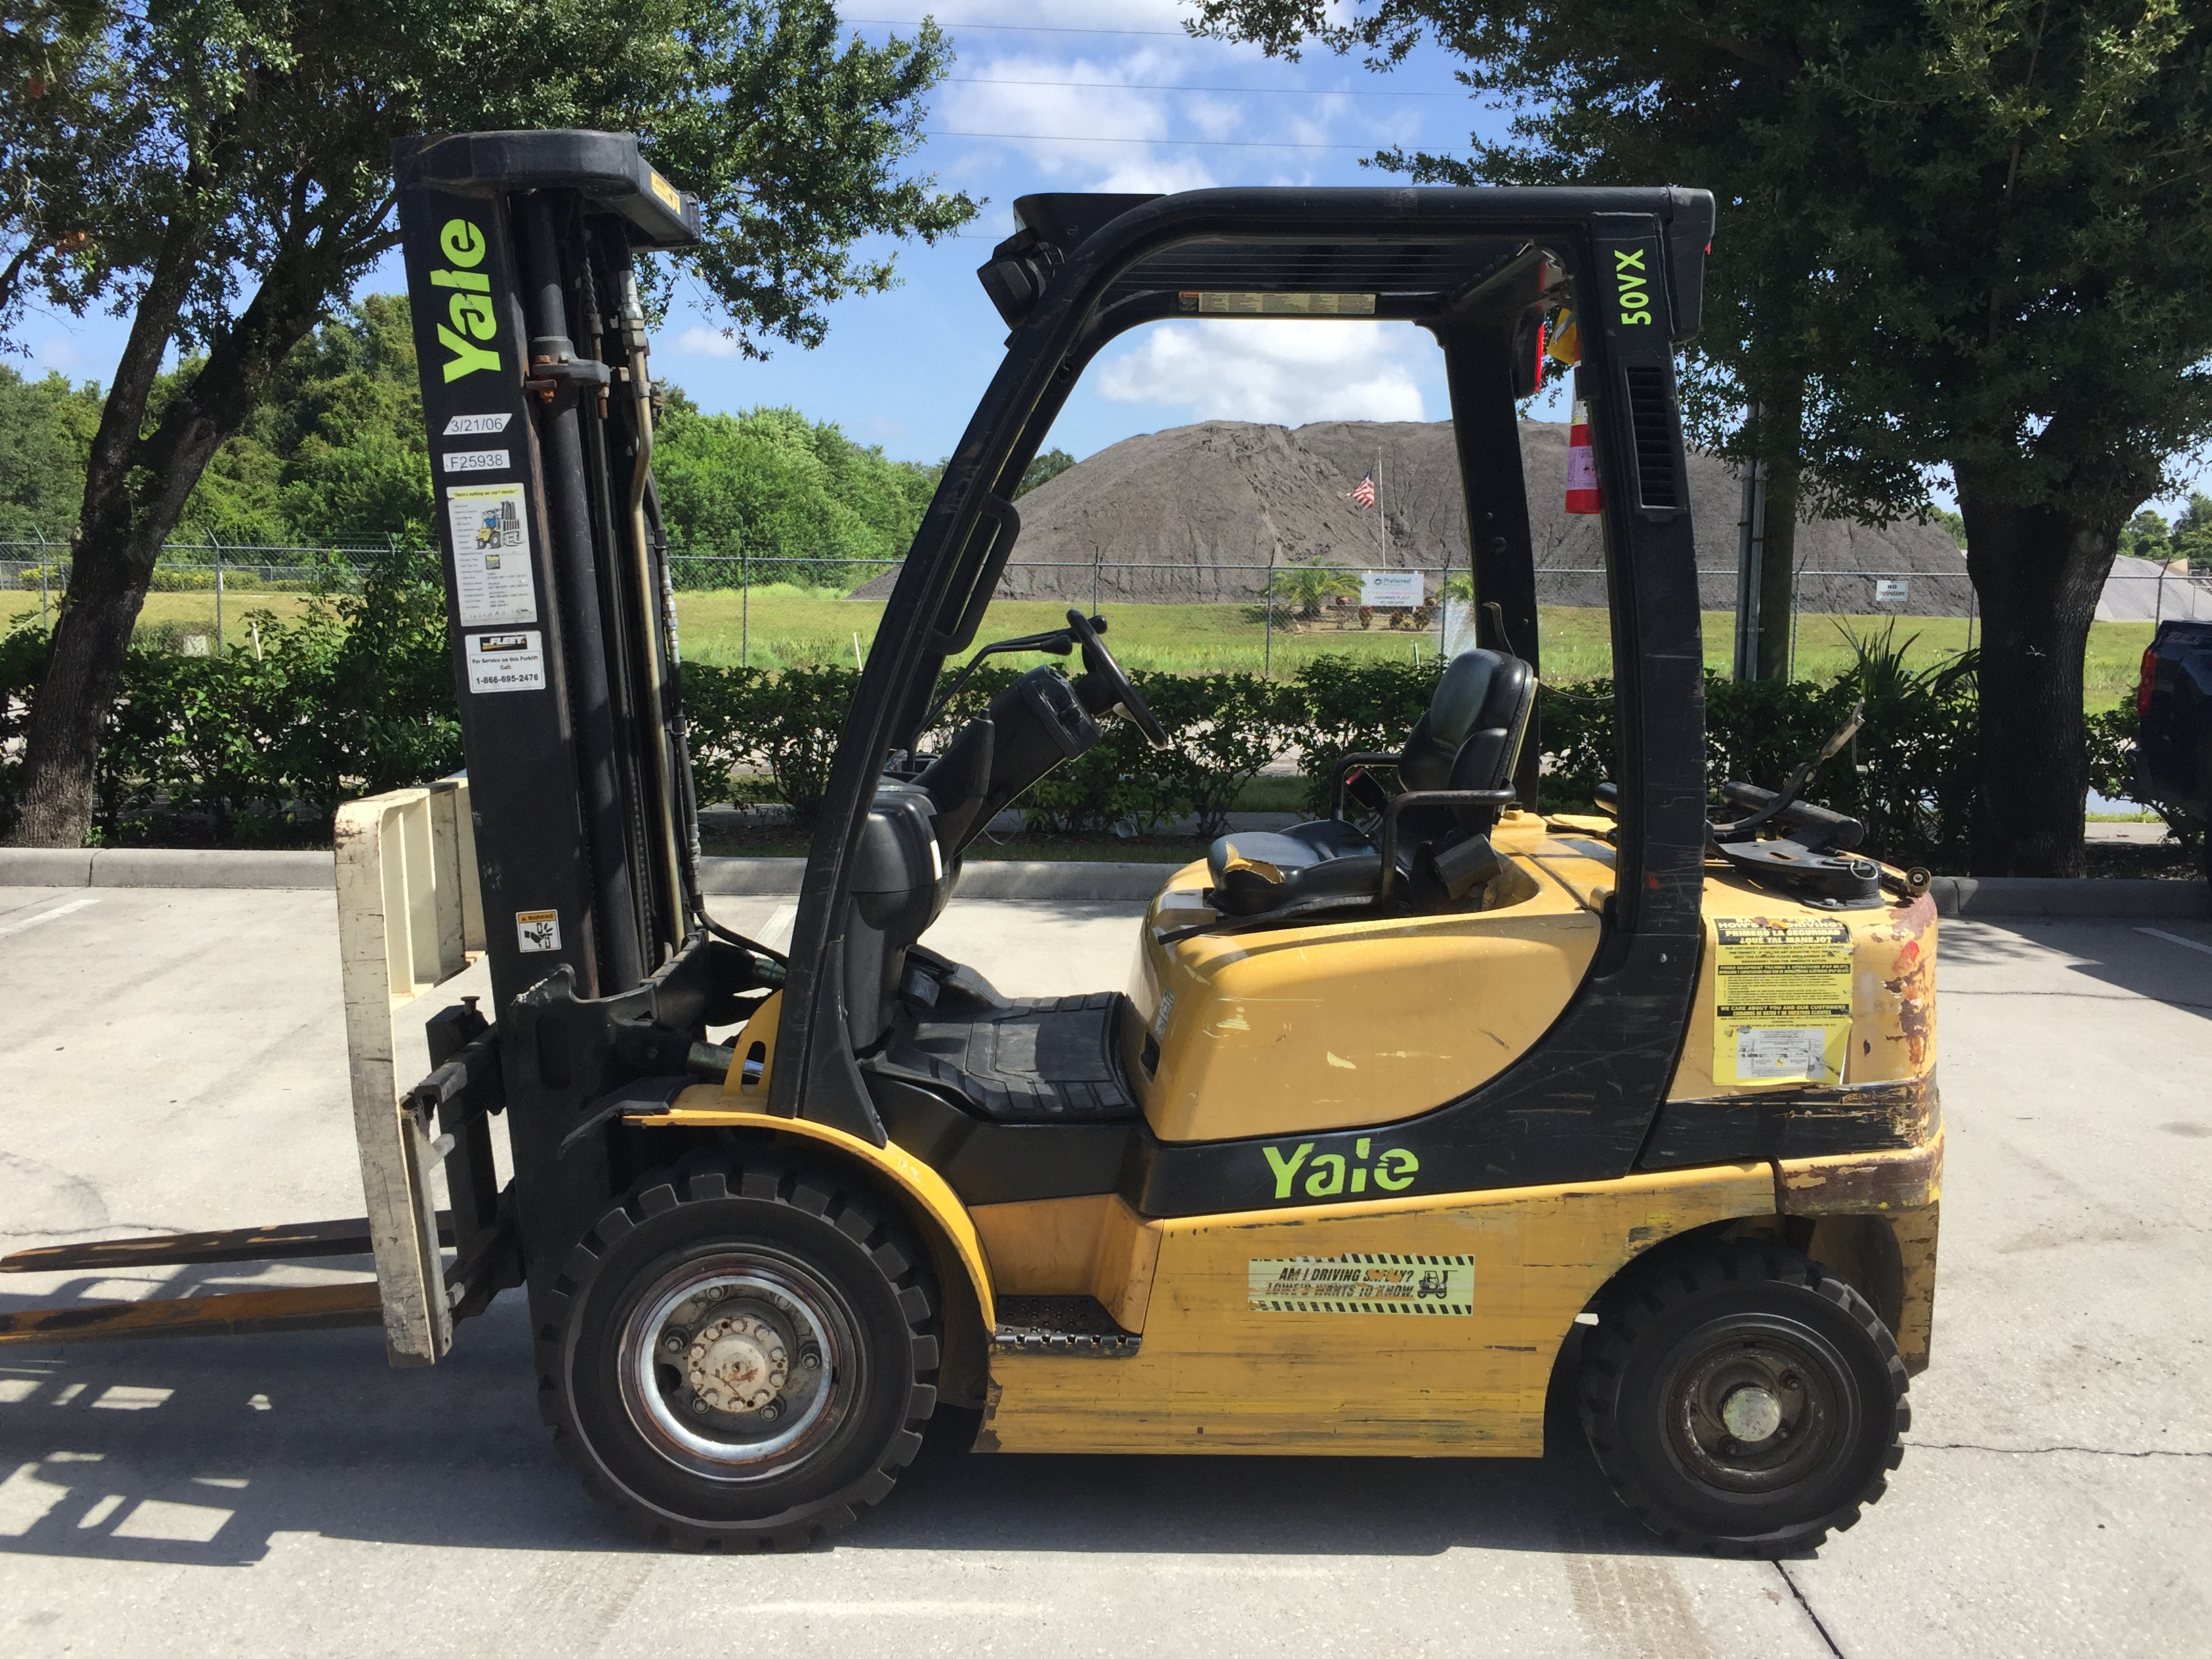 2005 YALE GLP050VXEURE090 FORKLIFTS FOR SALE